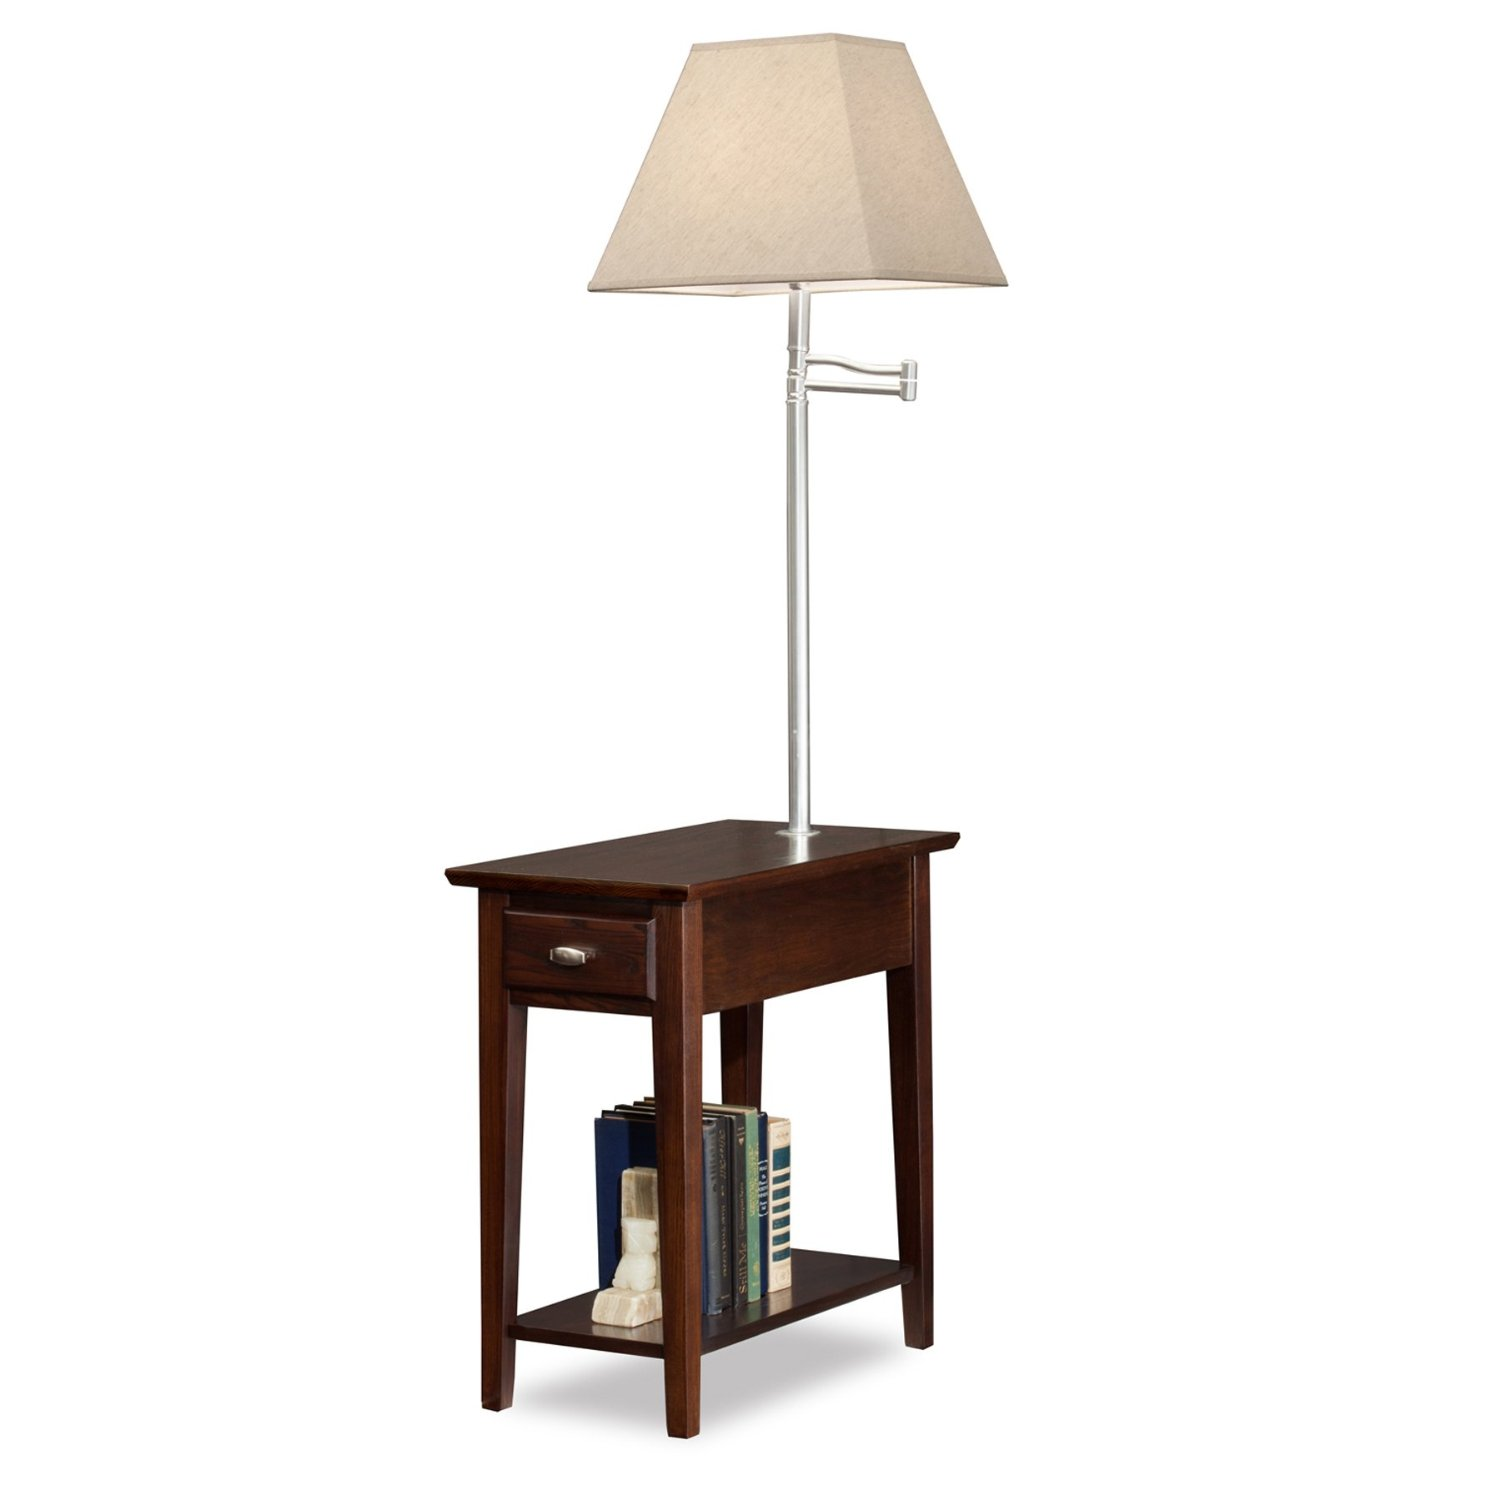 floor lamp with table photo - 5